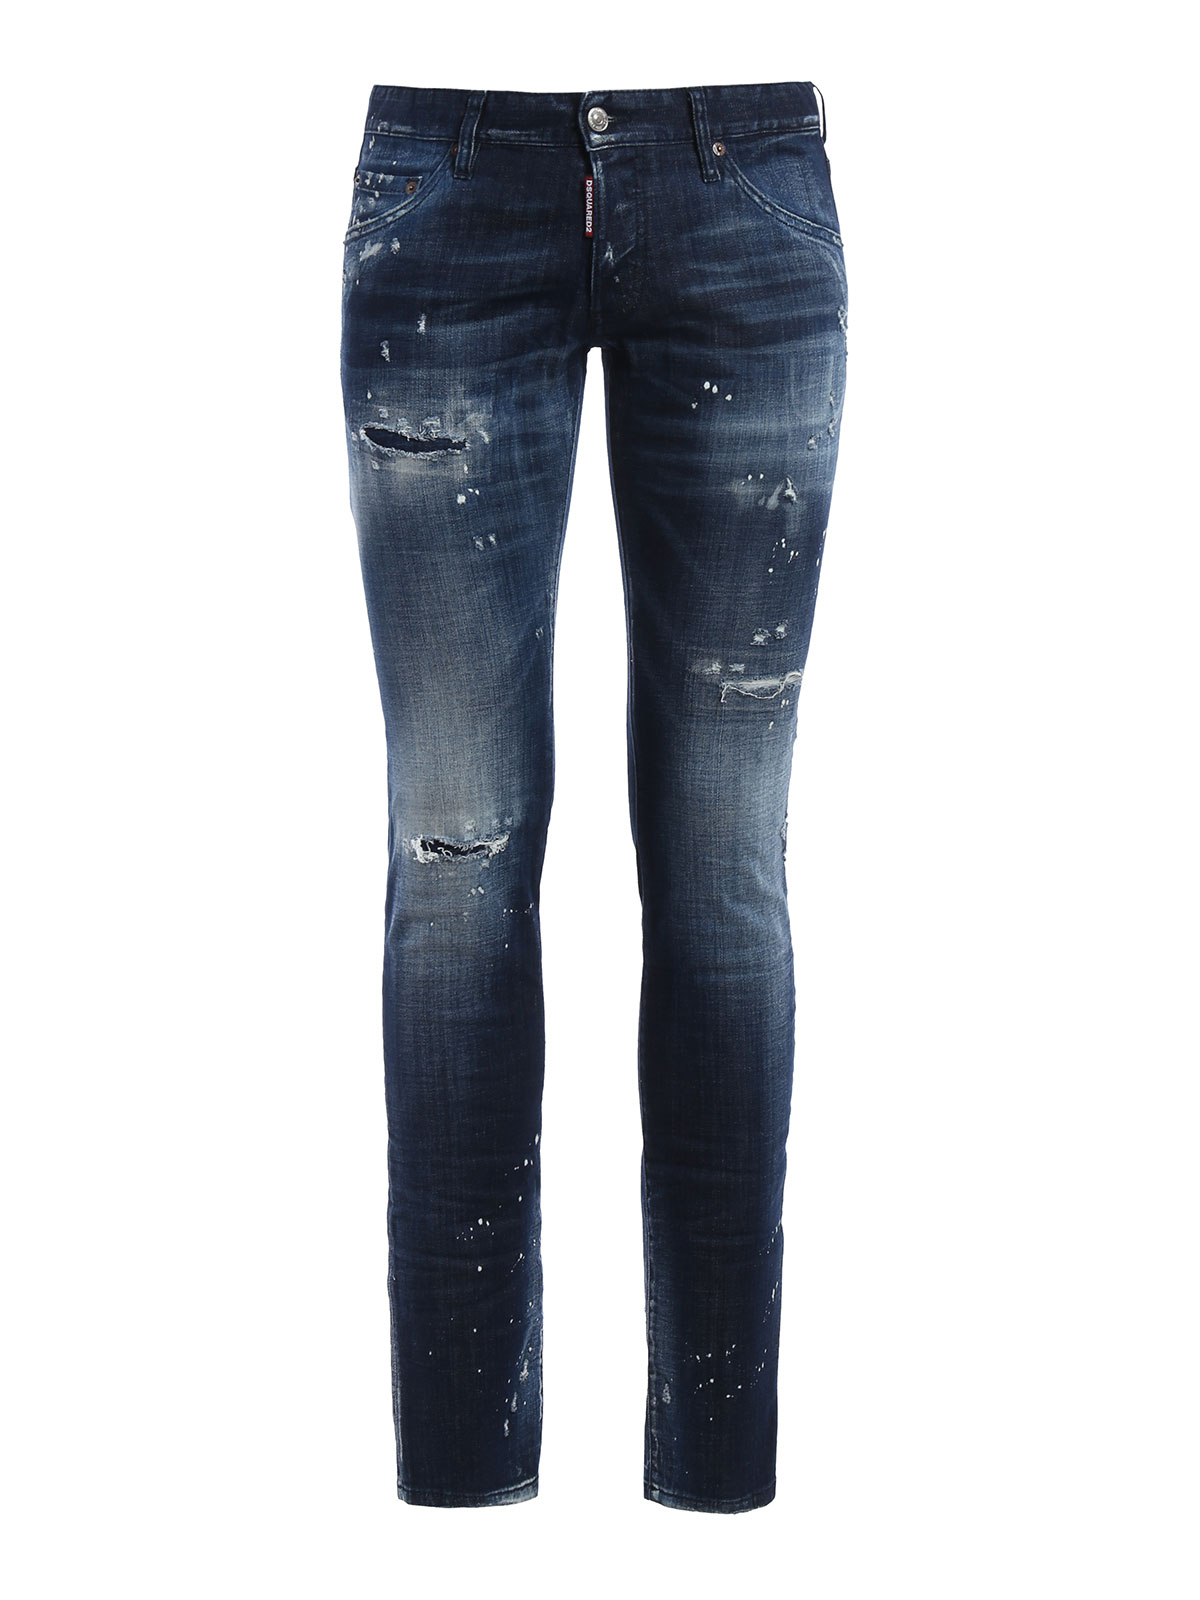 Jeans for Juniors. Make a fashion statement with the wide selection of jeans for Juniors available at Kohl's! Explore Juniors' skinny jeans, boyfriend jeans, distressed denim, jeggings, bootcut jeans and plus size Juniors jeans.